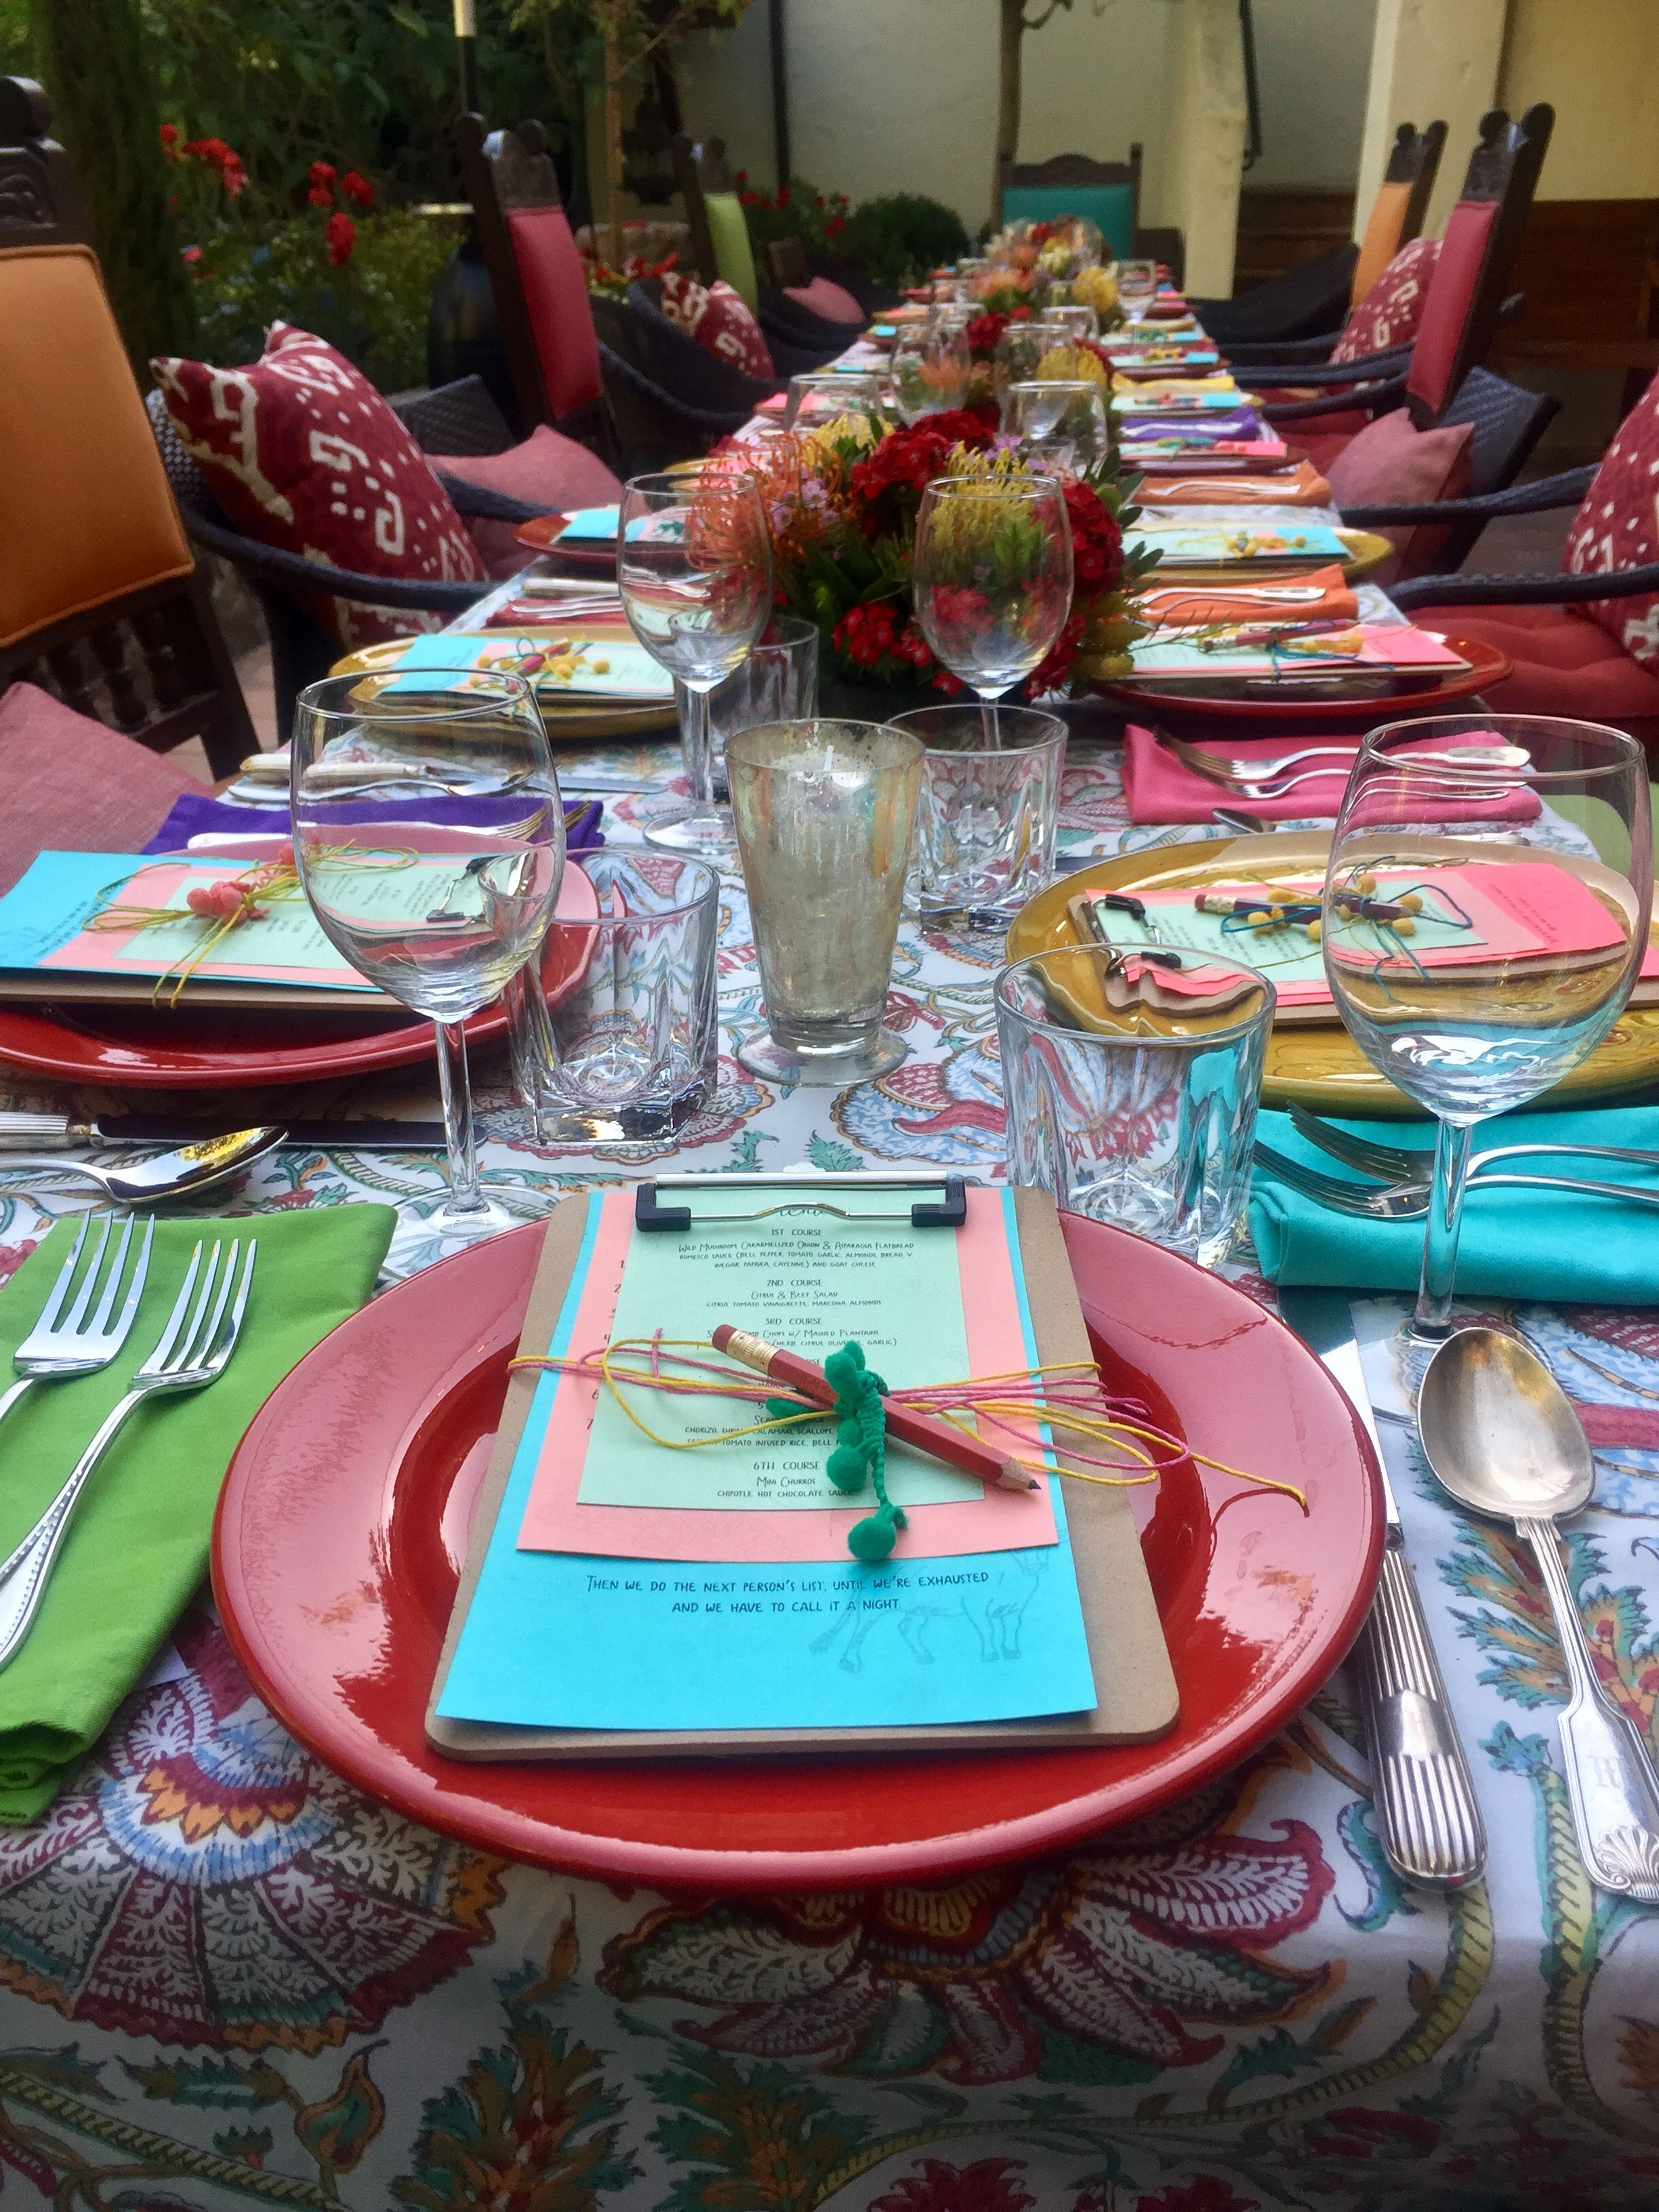 Colorful set table wedding catering catering dinner party